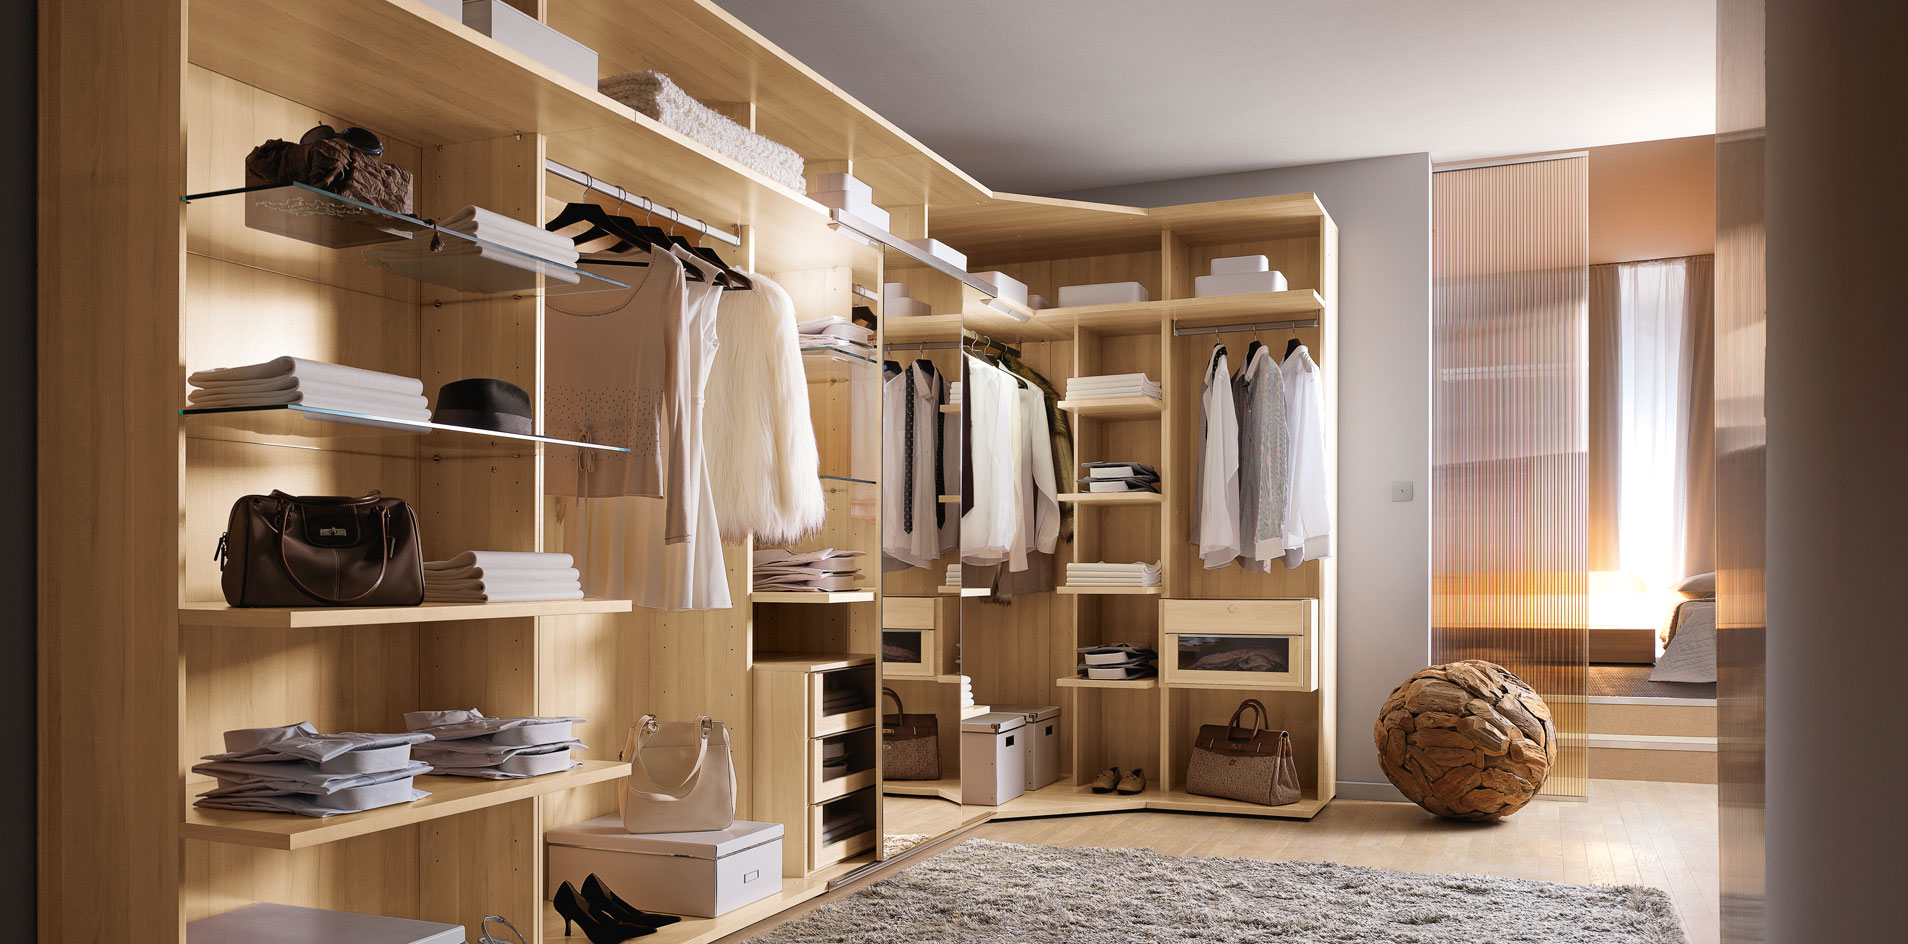 Khmer Furniture Wardrobe Odeas modular walk-in wardrobe in Cambodia